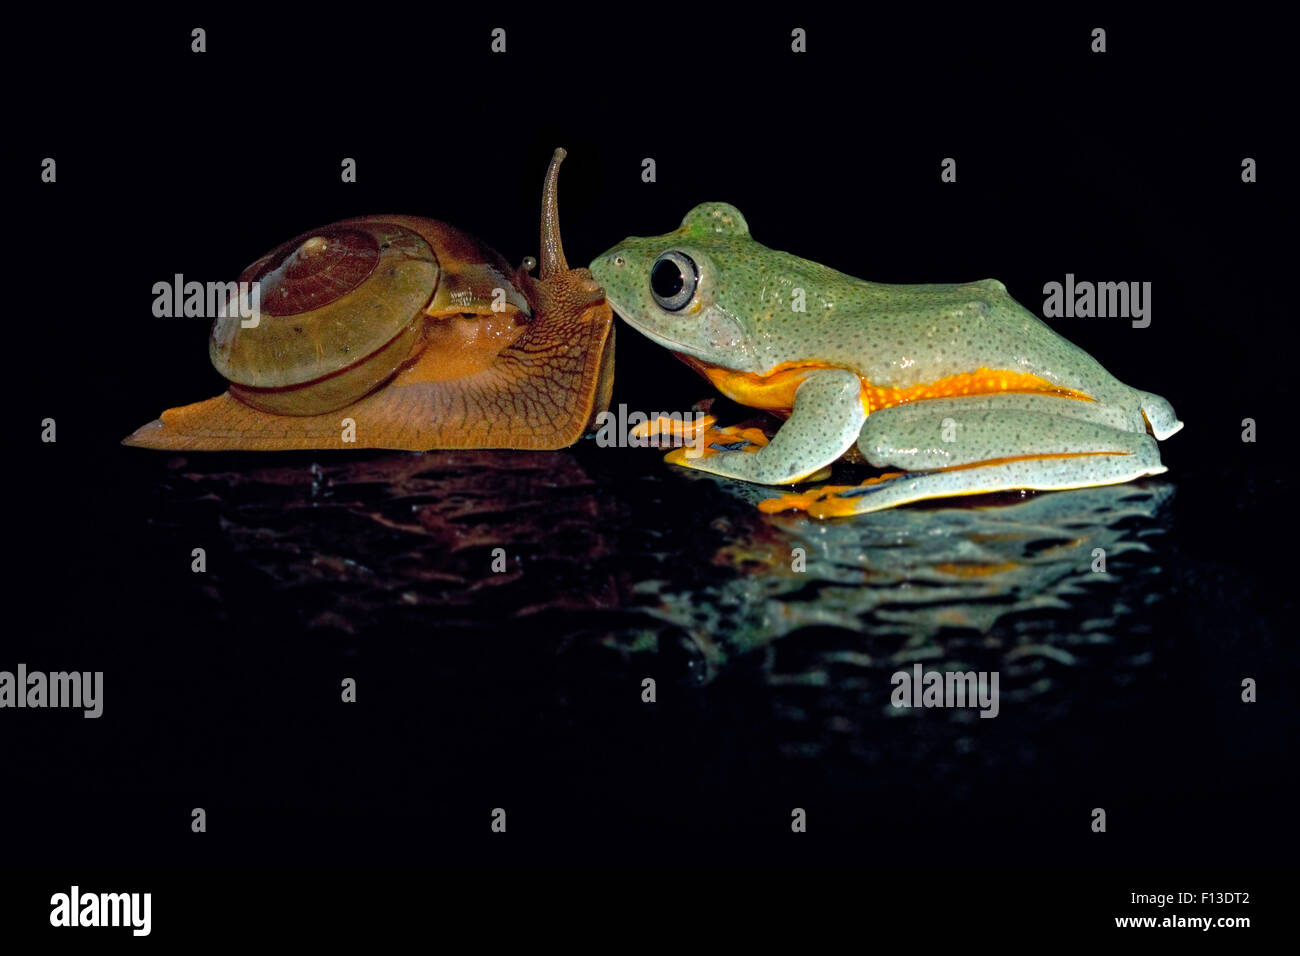 Tree frog kissing a snail - Stock Image